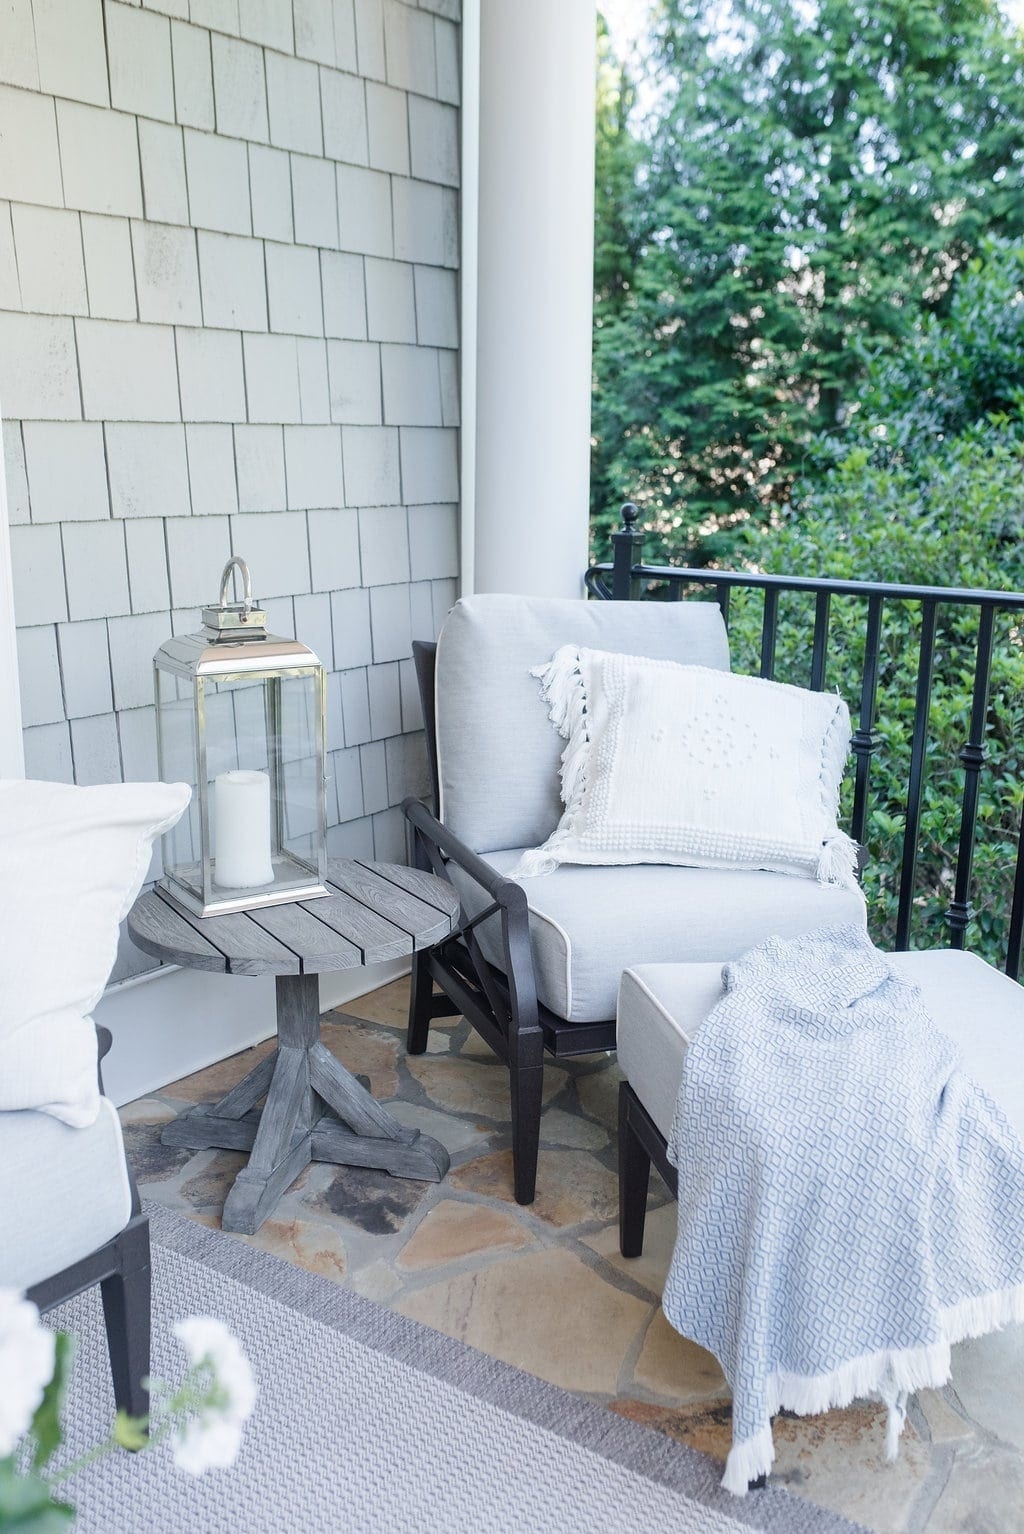 Woodard Outdoor Furniture. Lounge chair that rocks outside and teak side table.